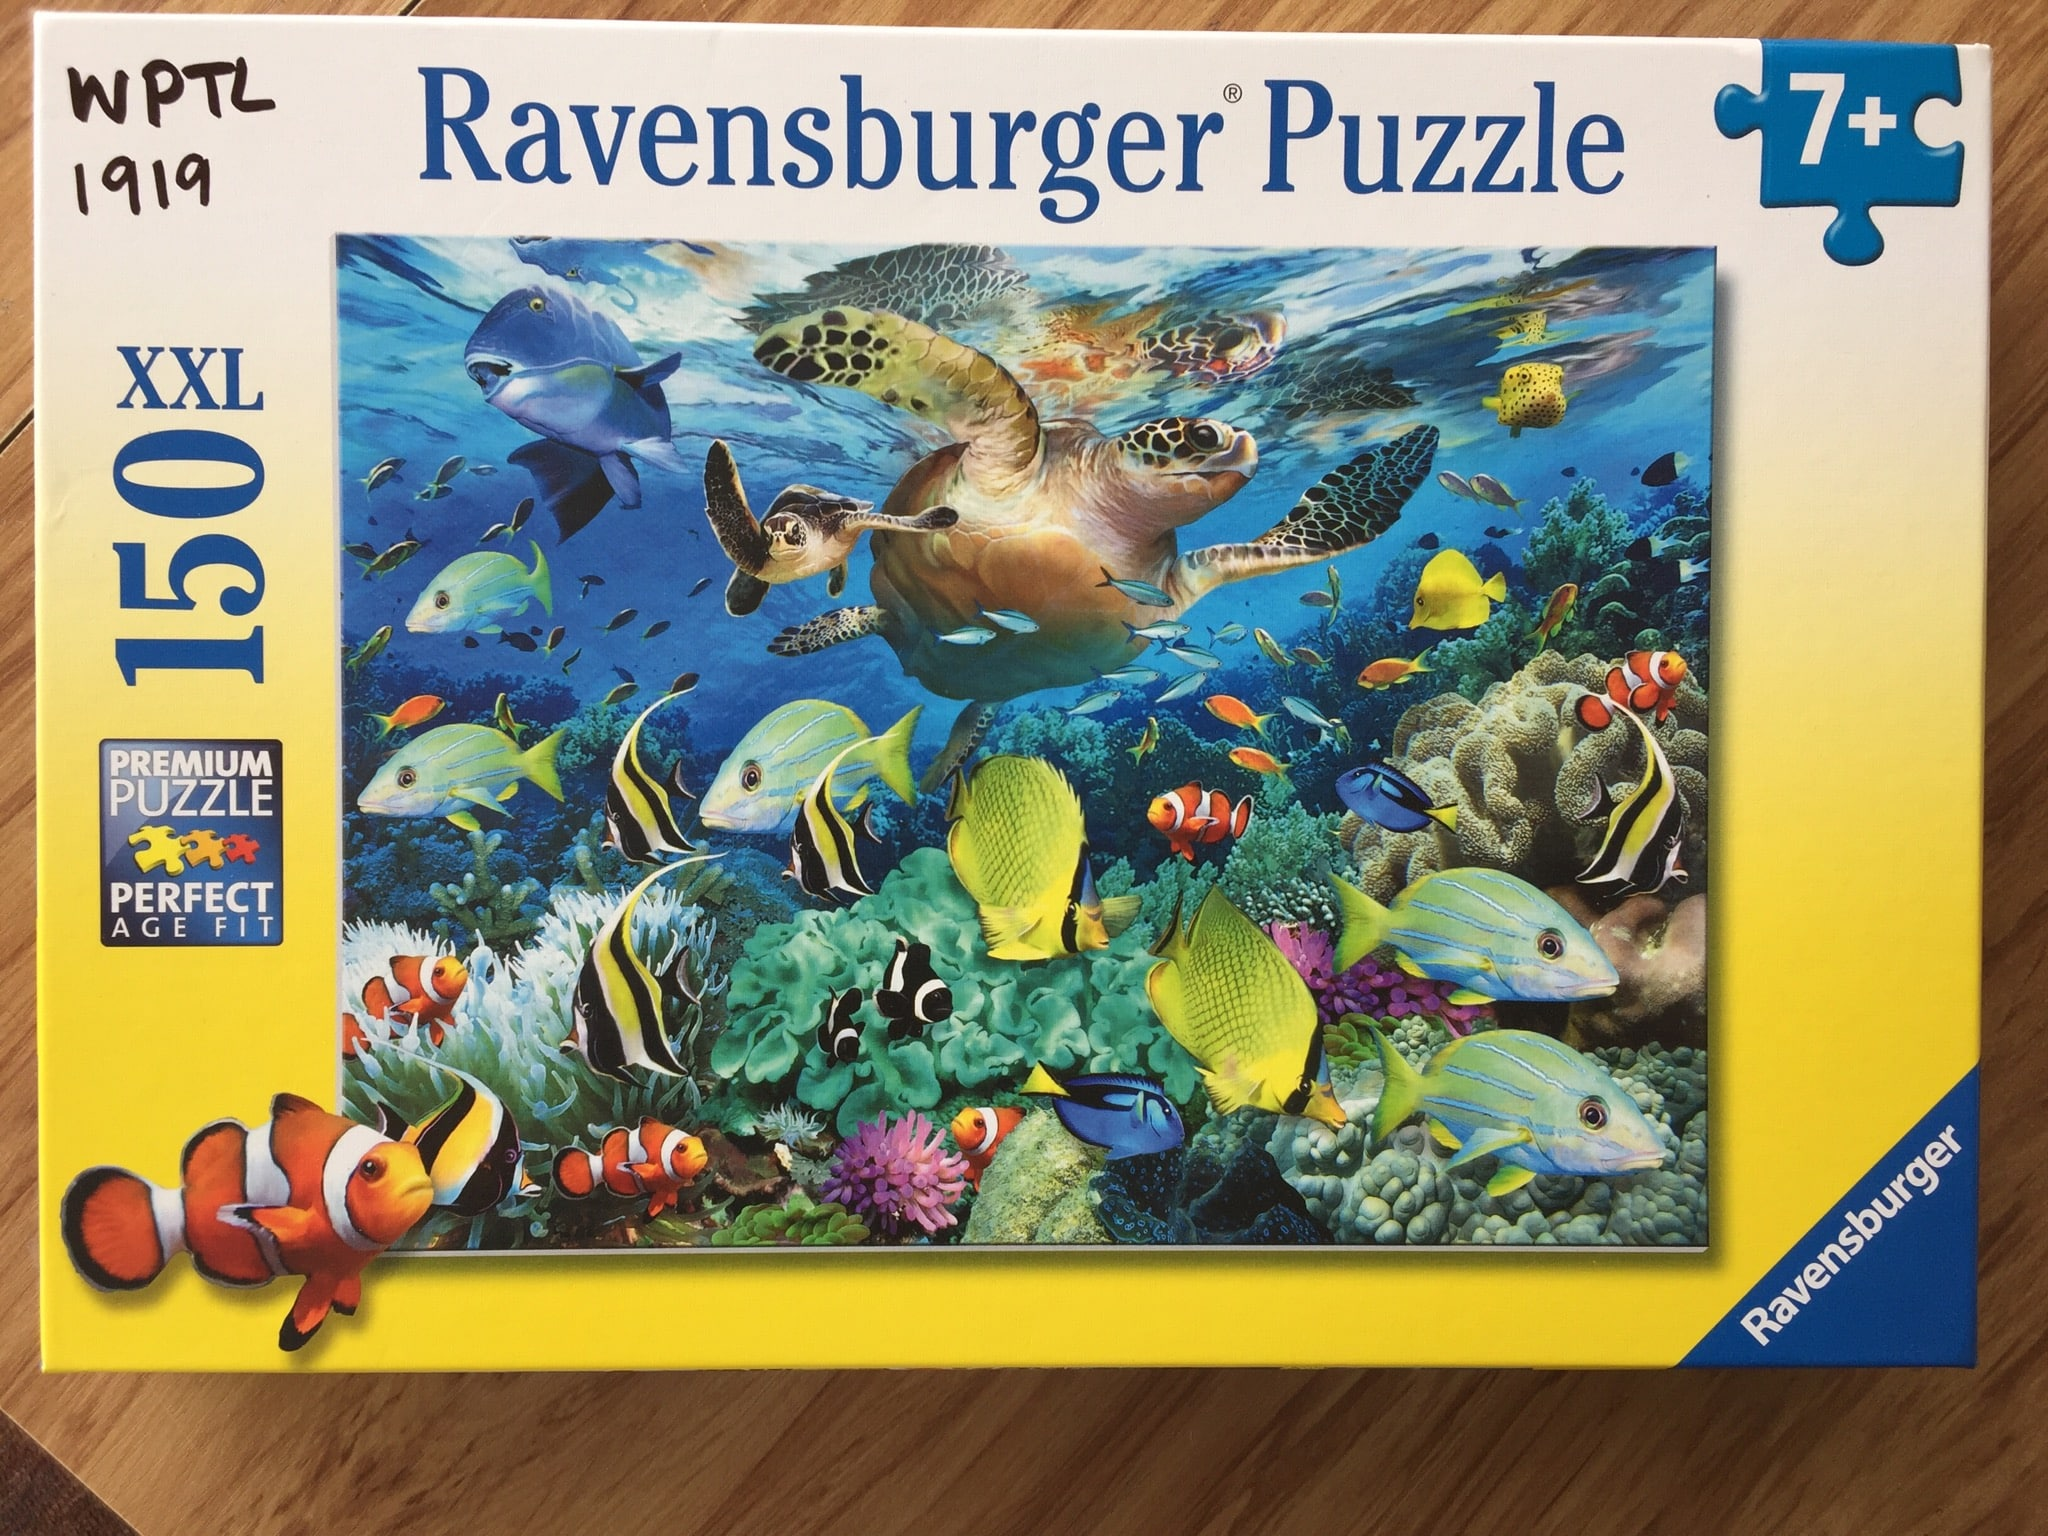 Ocean Puzzle Ravensburger photo